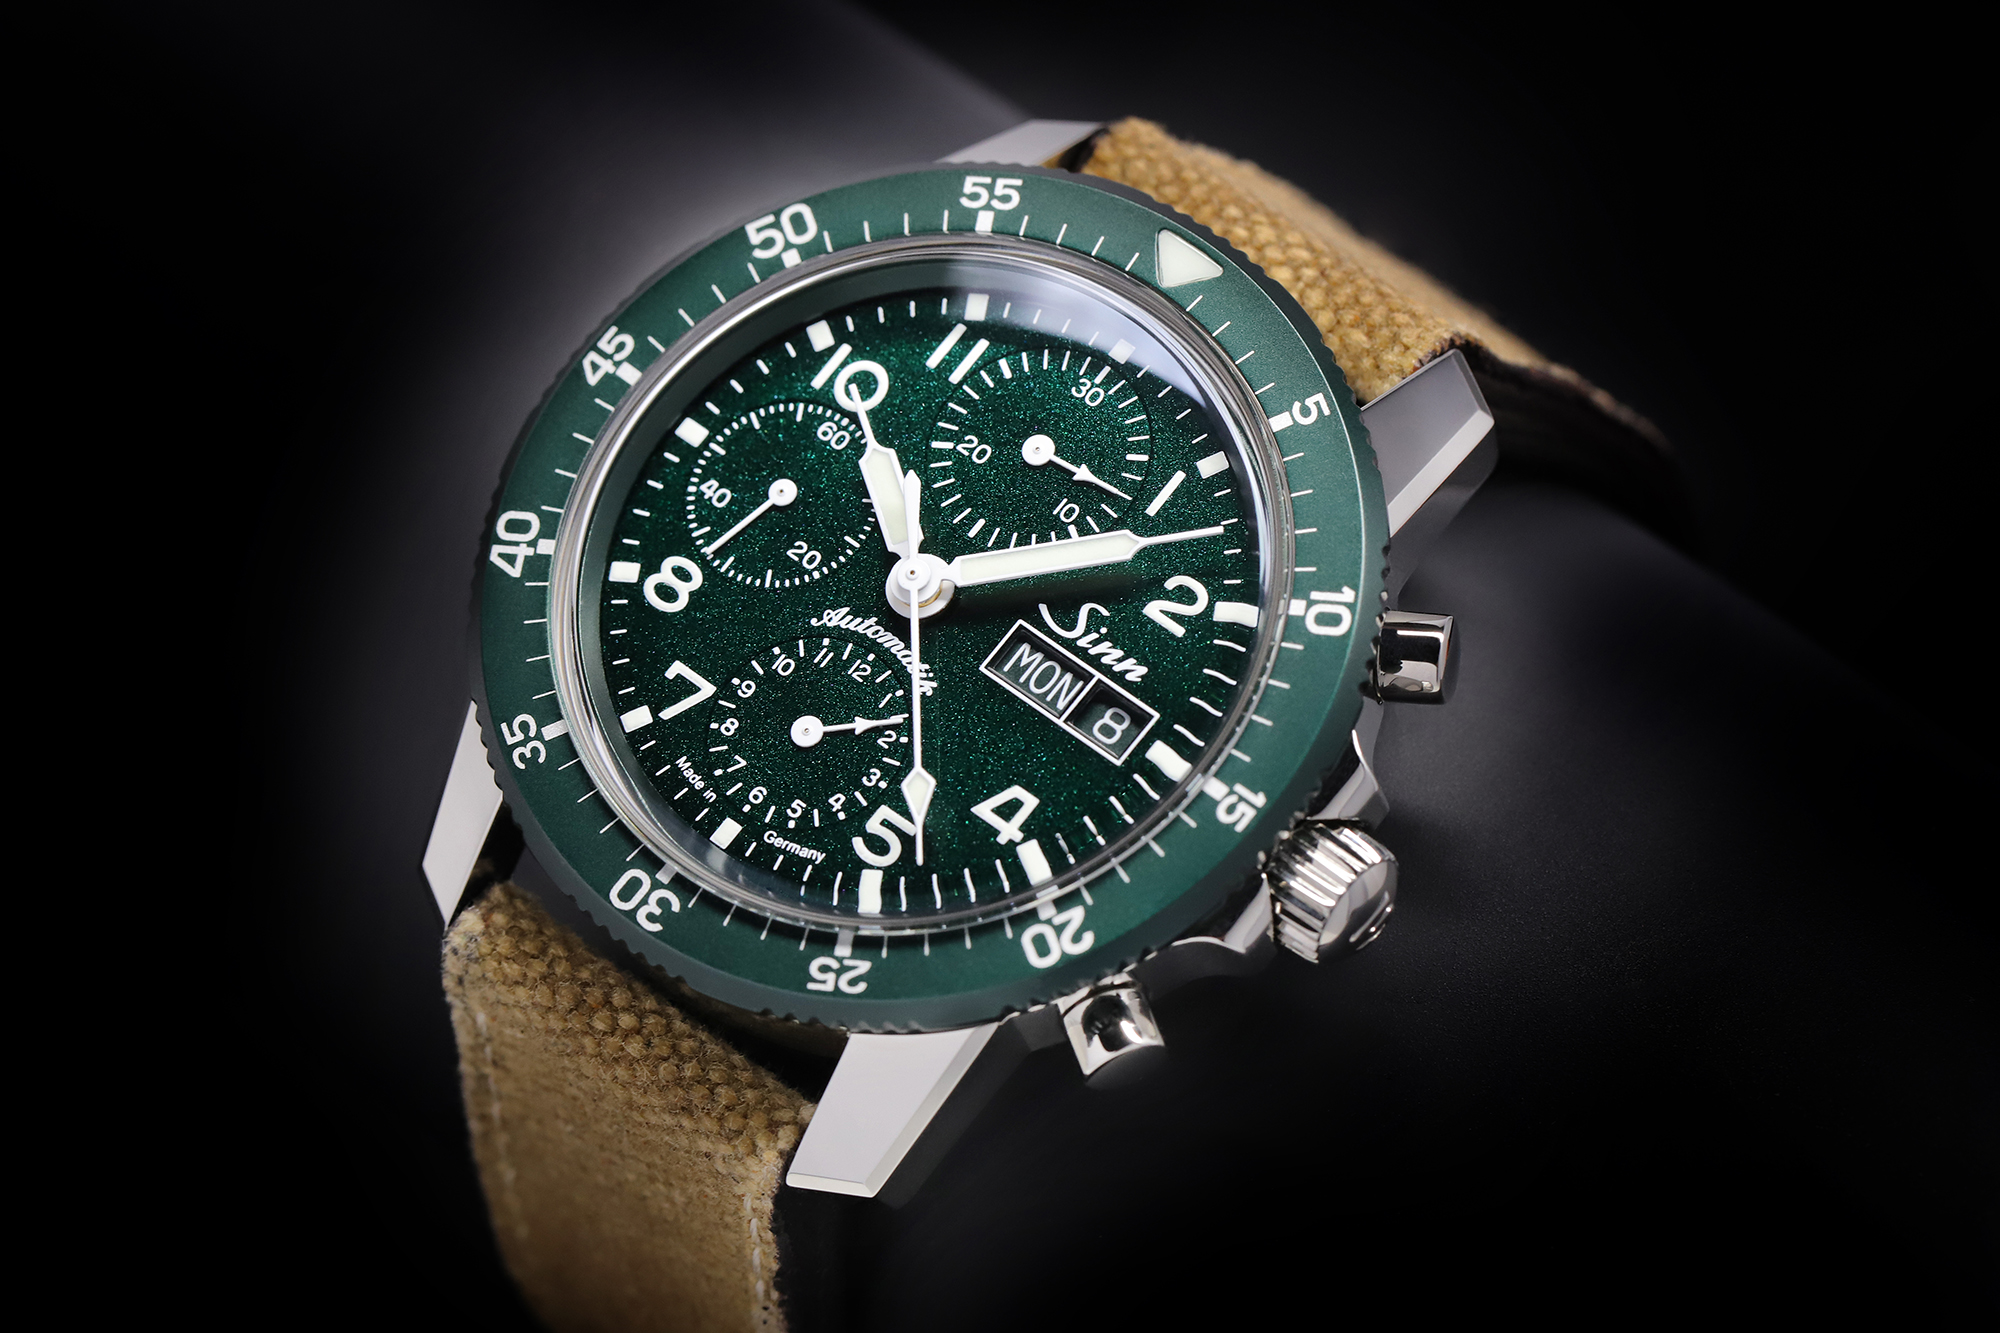 INTRODUCING: The Sinn 103 Sa G is a totally new look for Sinn, and we can get around it